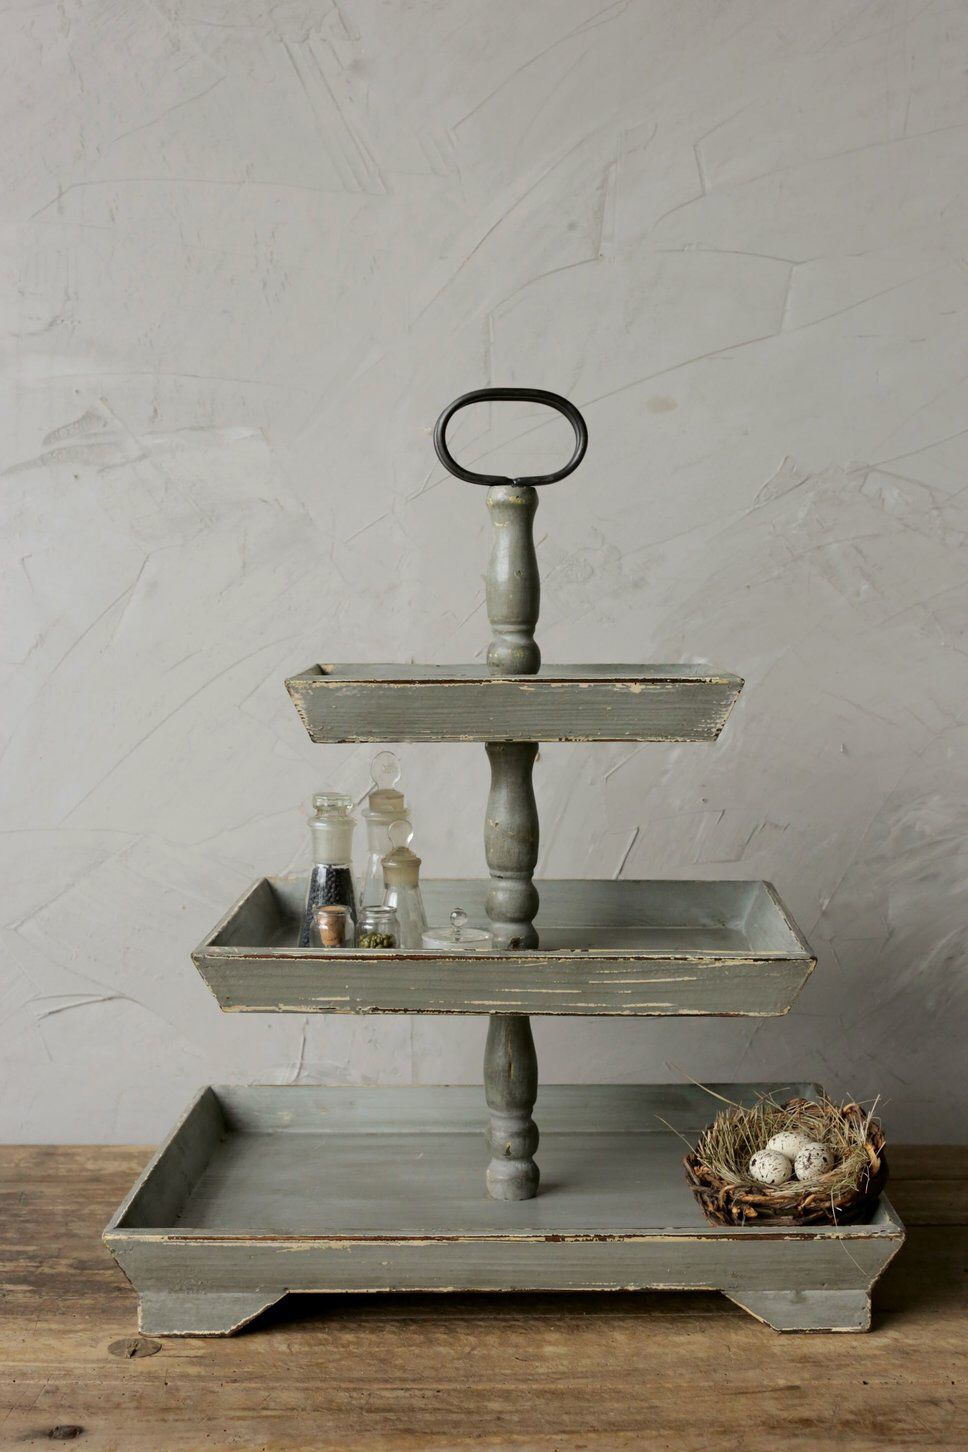 Lacordaire Tiered Stand Tiered Stand Tray Decor Decor